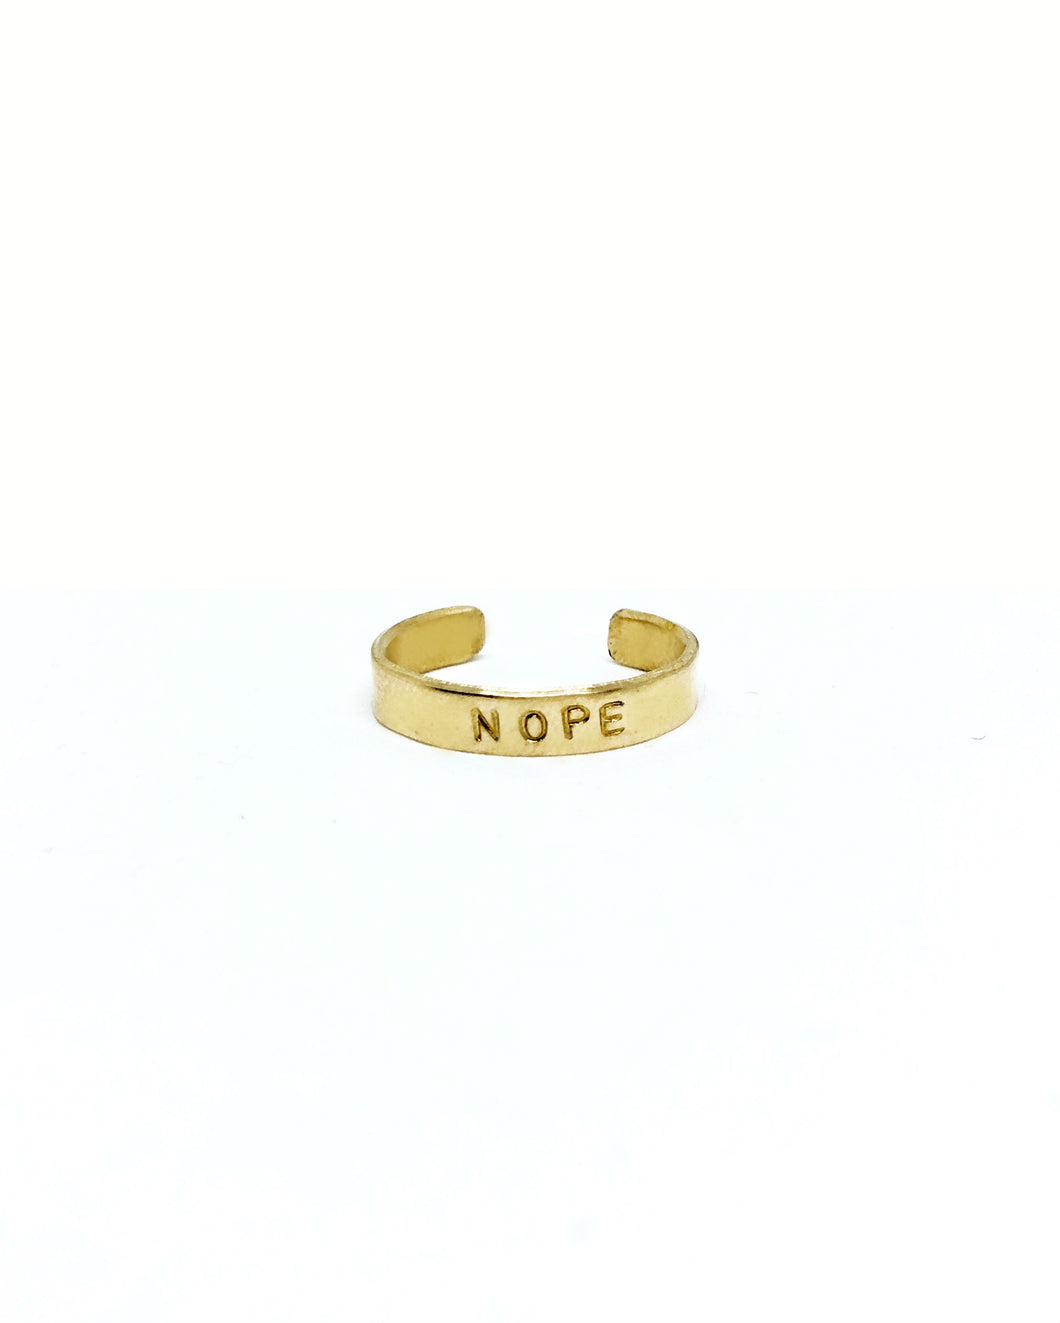 Nope Handstamped Ring